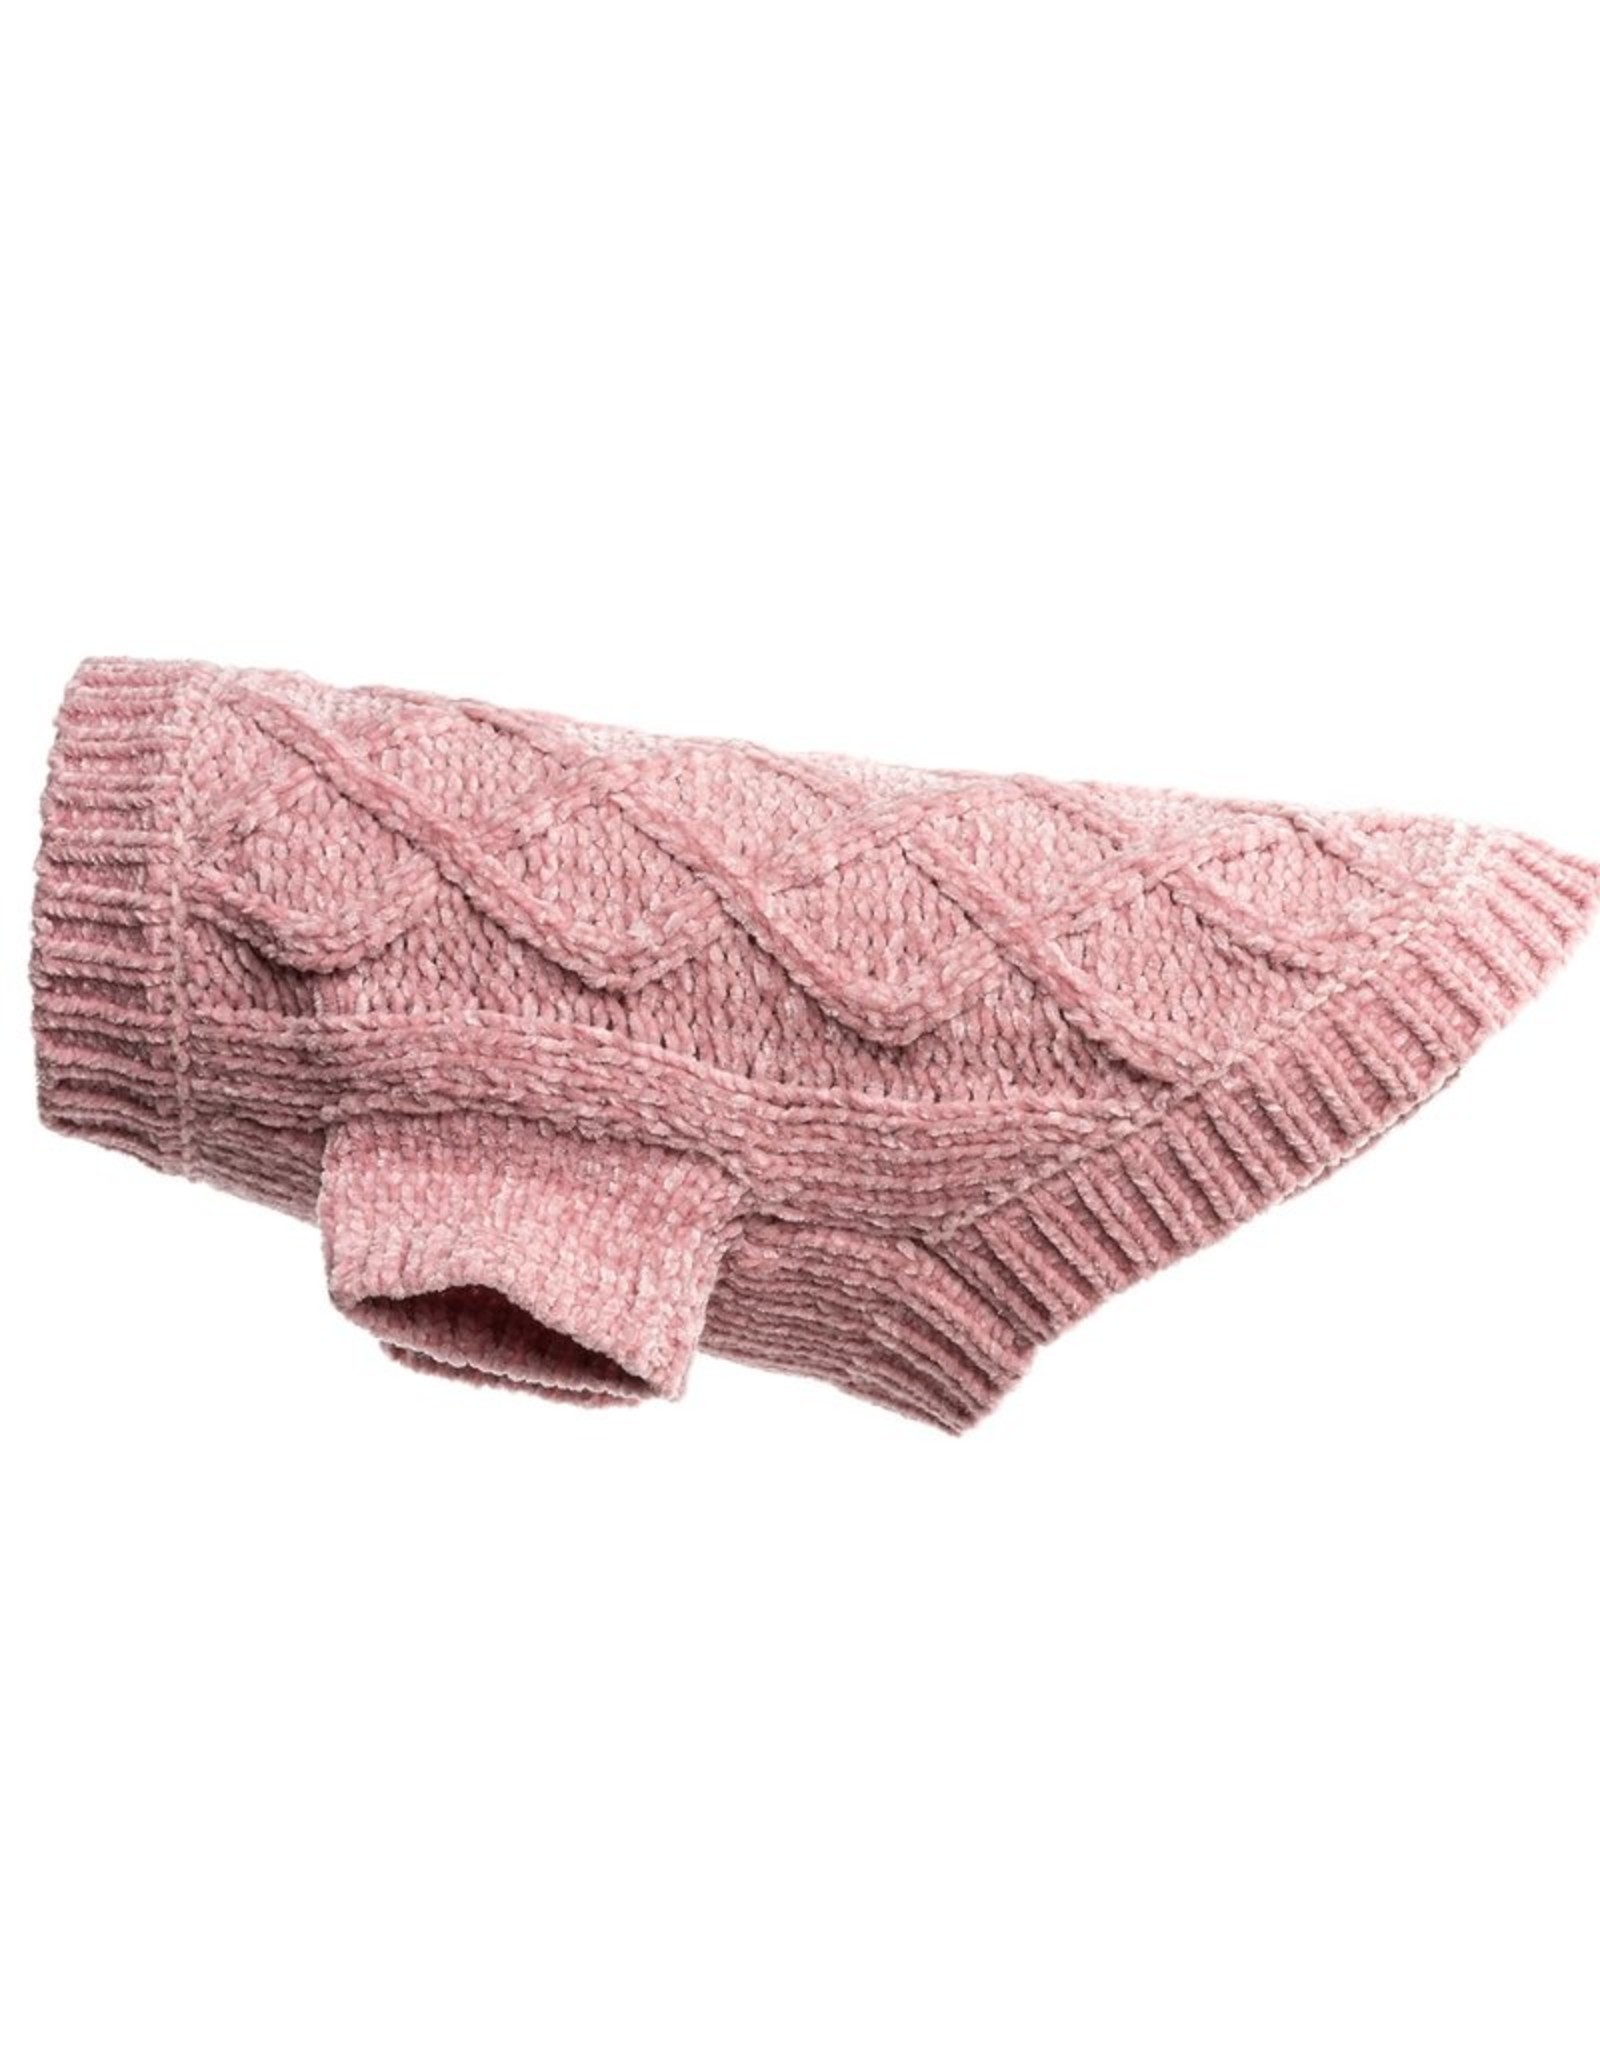 Fab Dog Pink Chenille Sweater